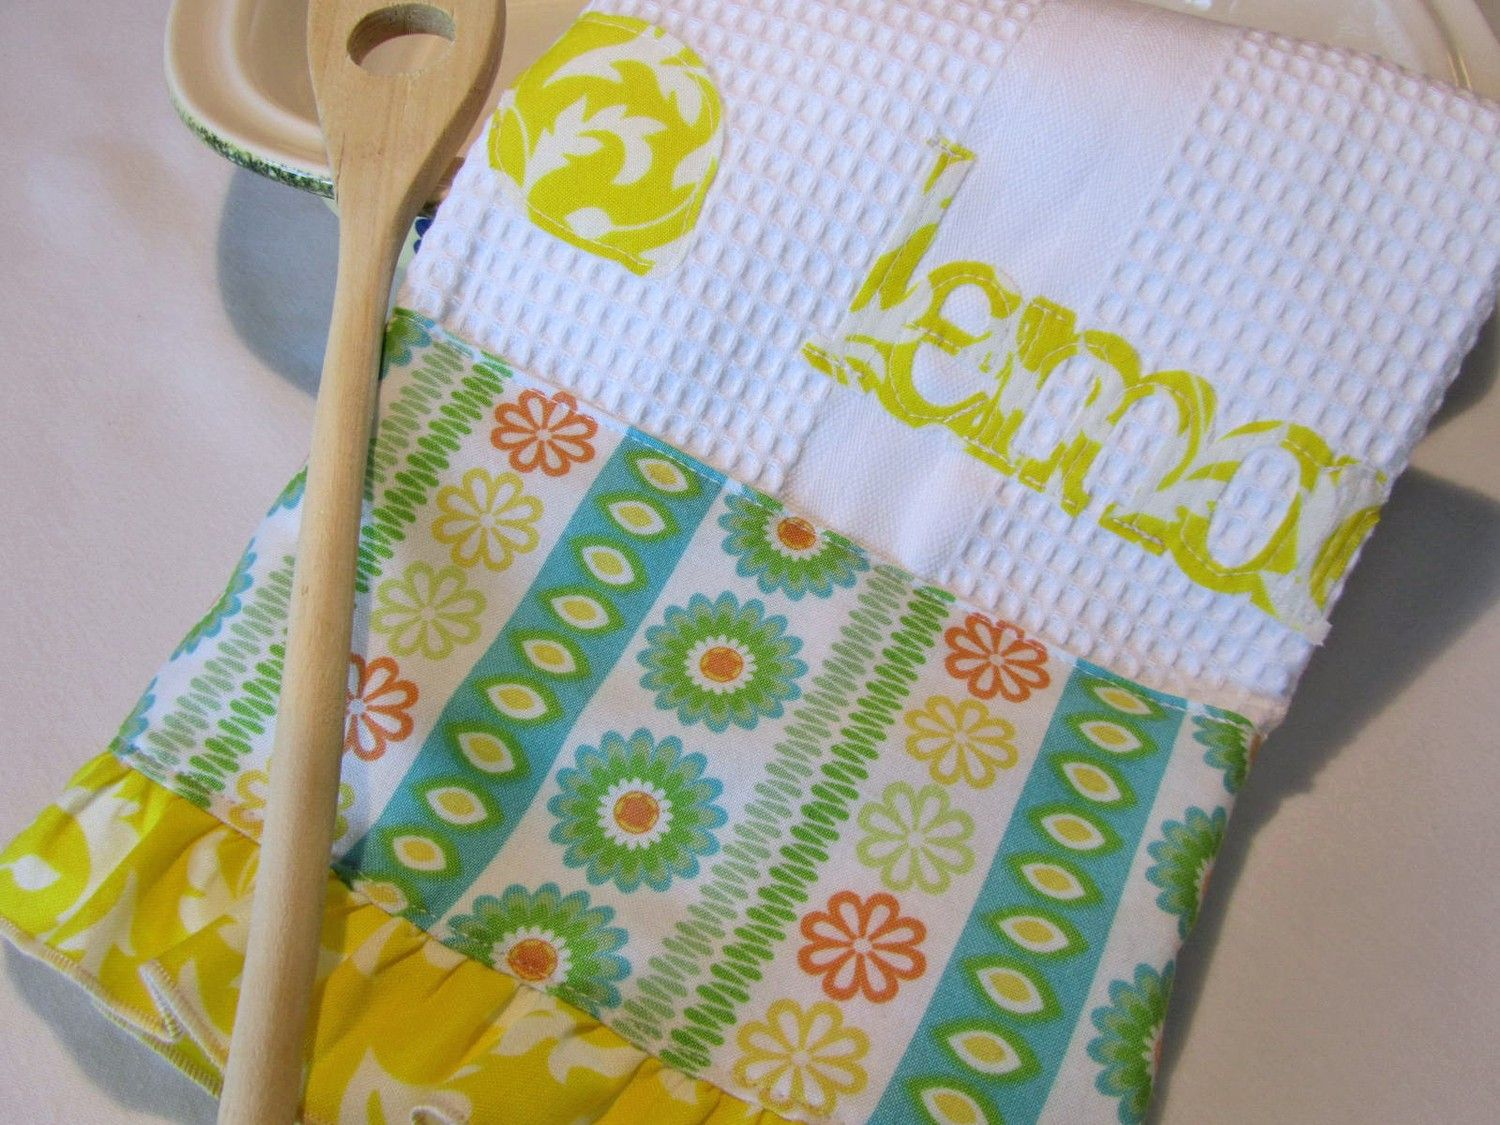 Kitchen Towel with Spring Green Teal Lemon Yellow Accent Fabric and